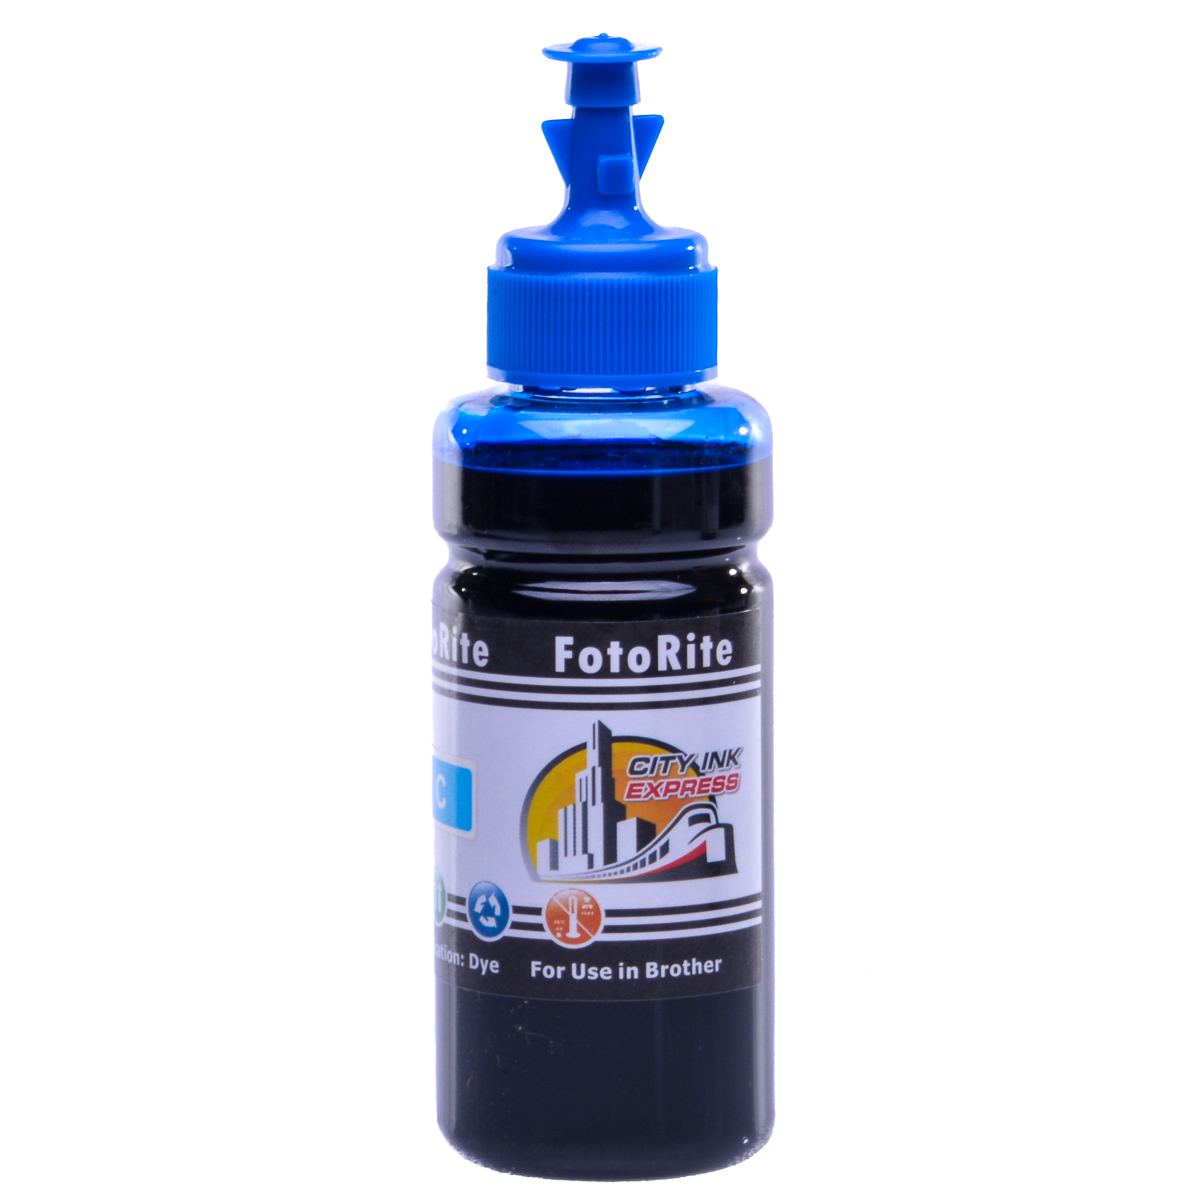 Cheap Cyan dye ink replaces Brother Fax 1560 - LC-1000C